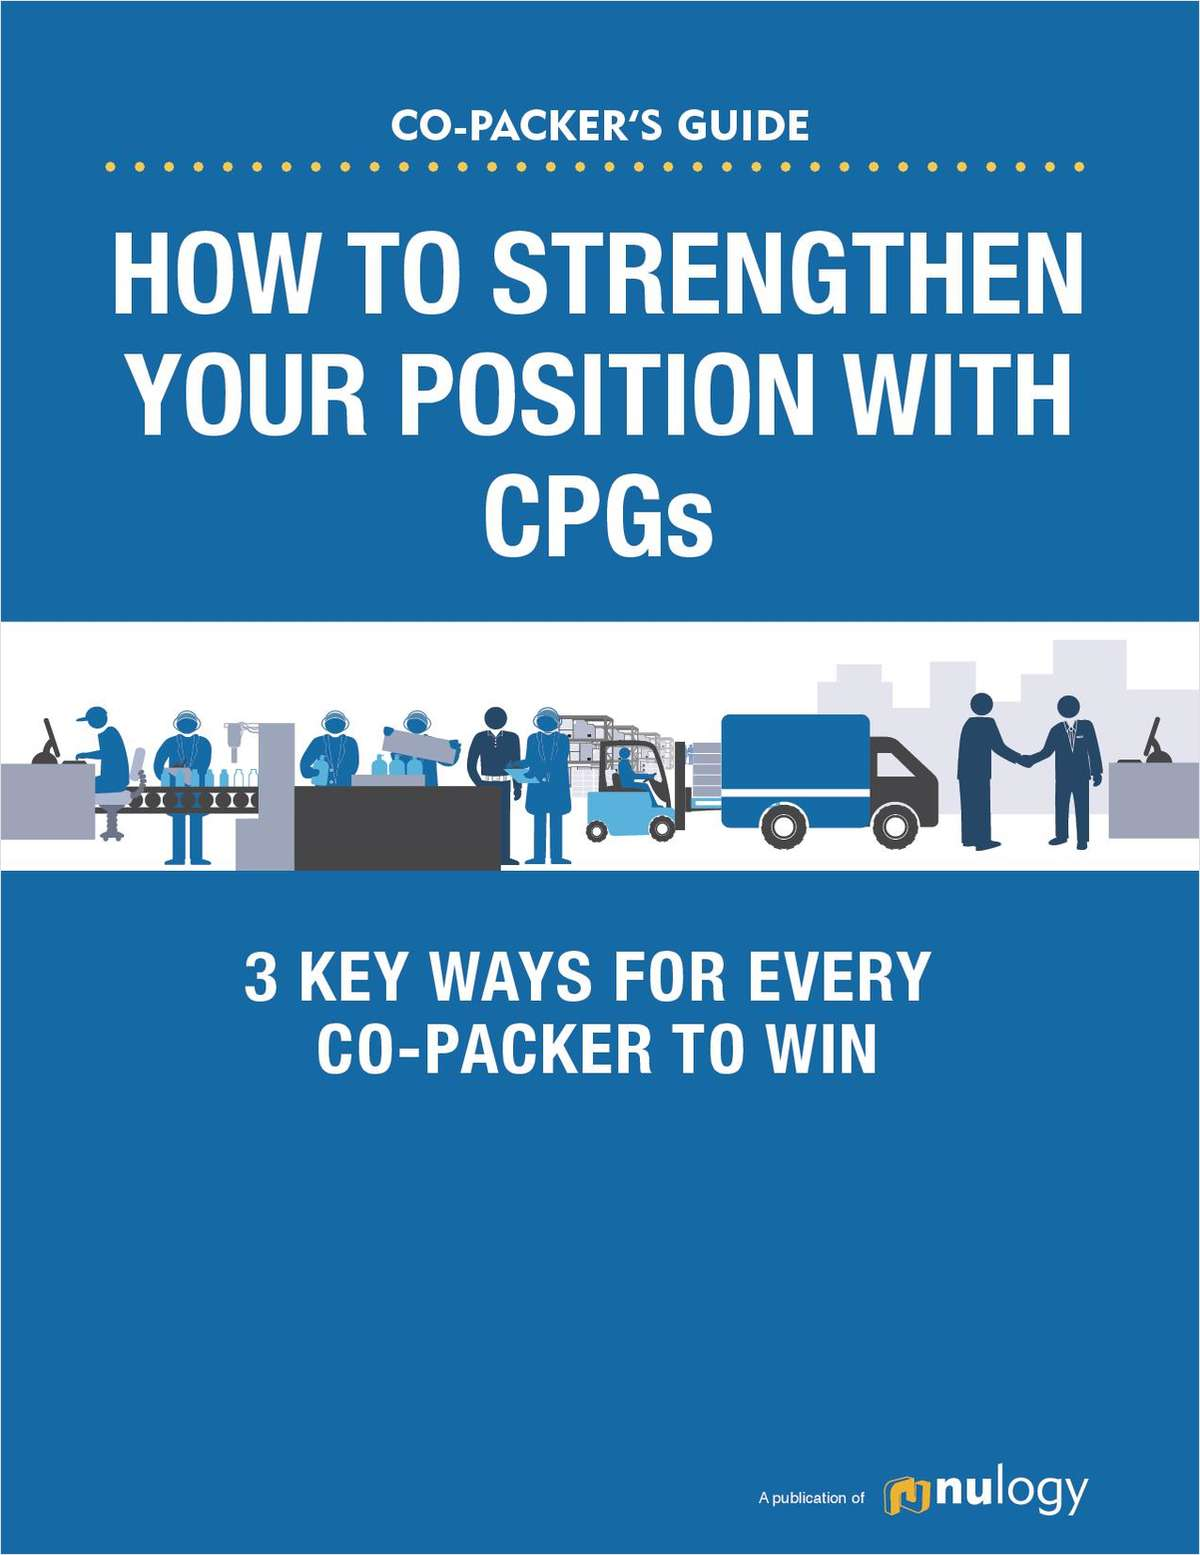 Co-Packer's Guide: How to Strengthen Your Position with CPGs